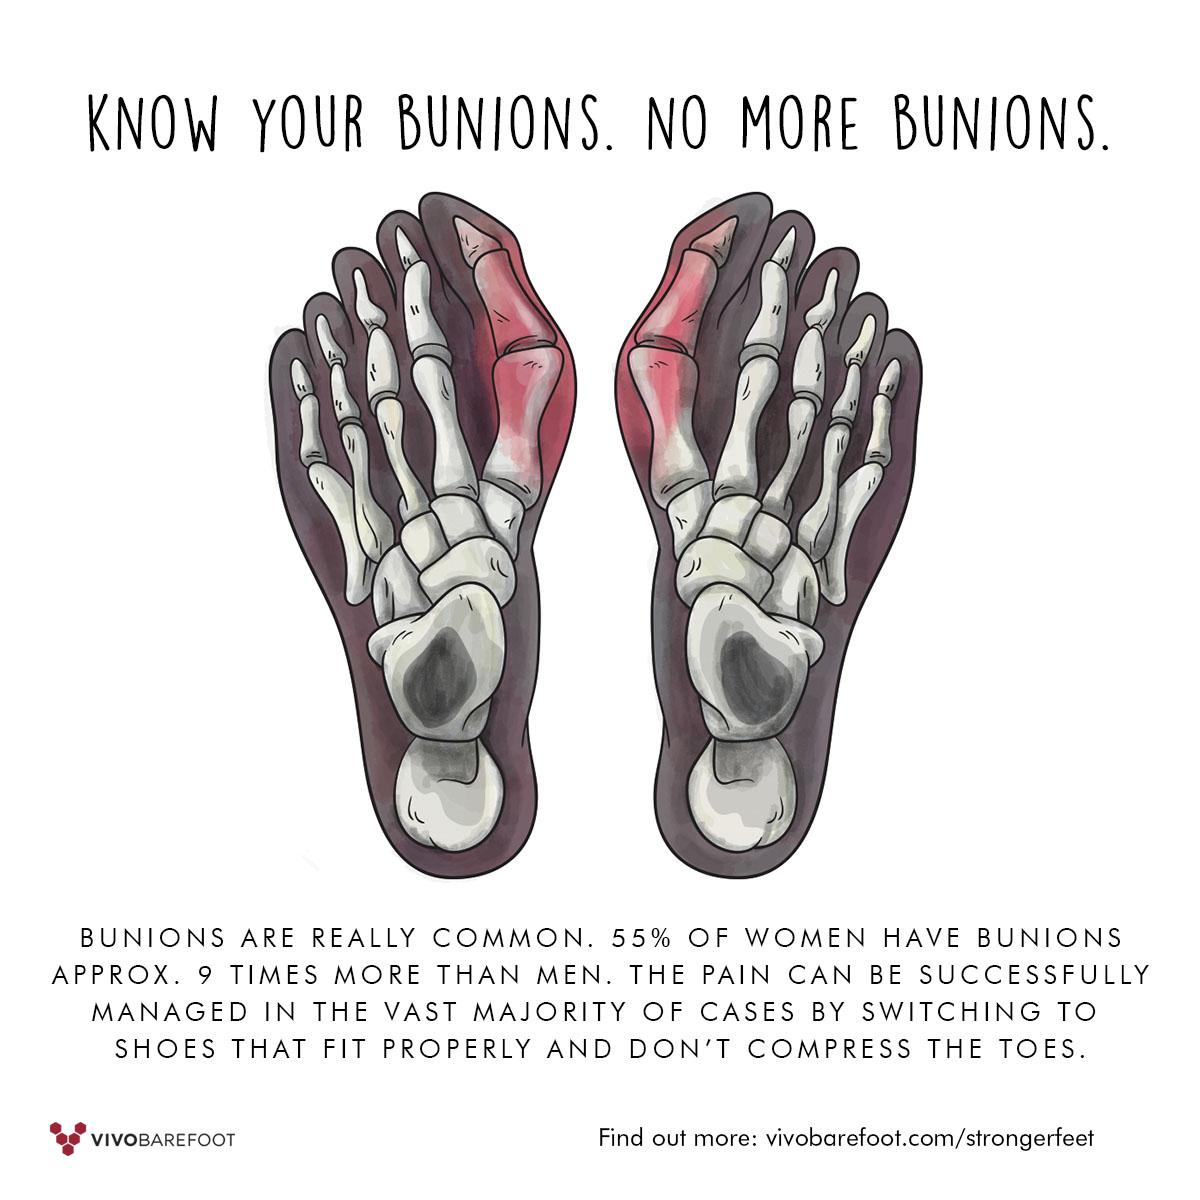 Bunions are common.. Wear shoes that fit properly and don't compress your feet http://t.co/XCkw7J25Eq #forfootsake http://t.co/1mpwwsi7Cr